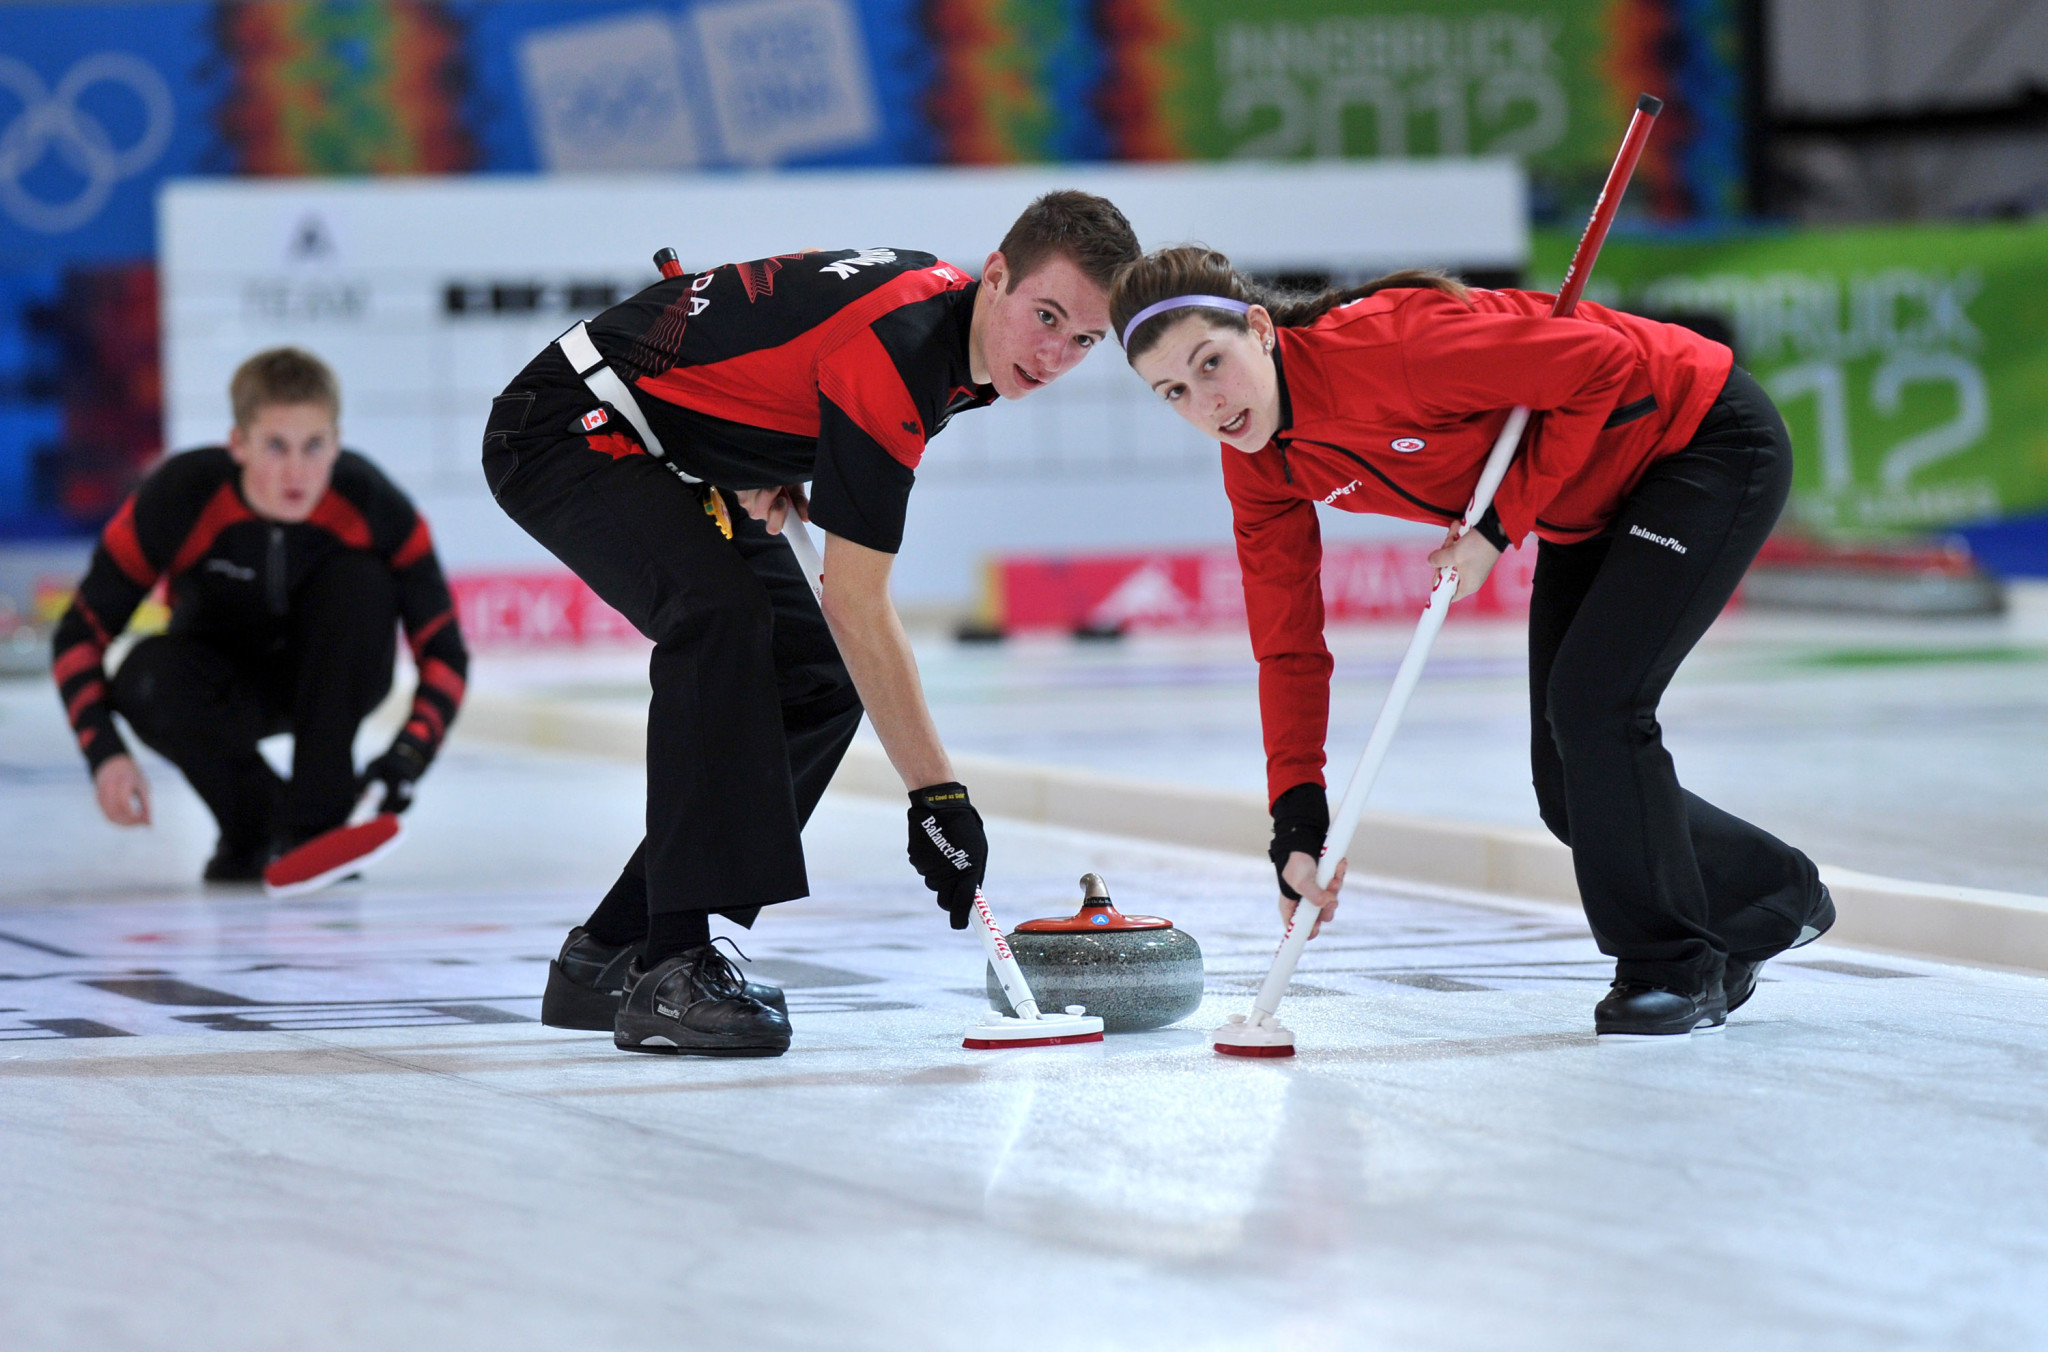 World Mixed Curling Championships poised to begin in Canada